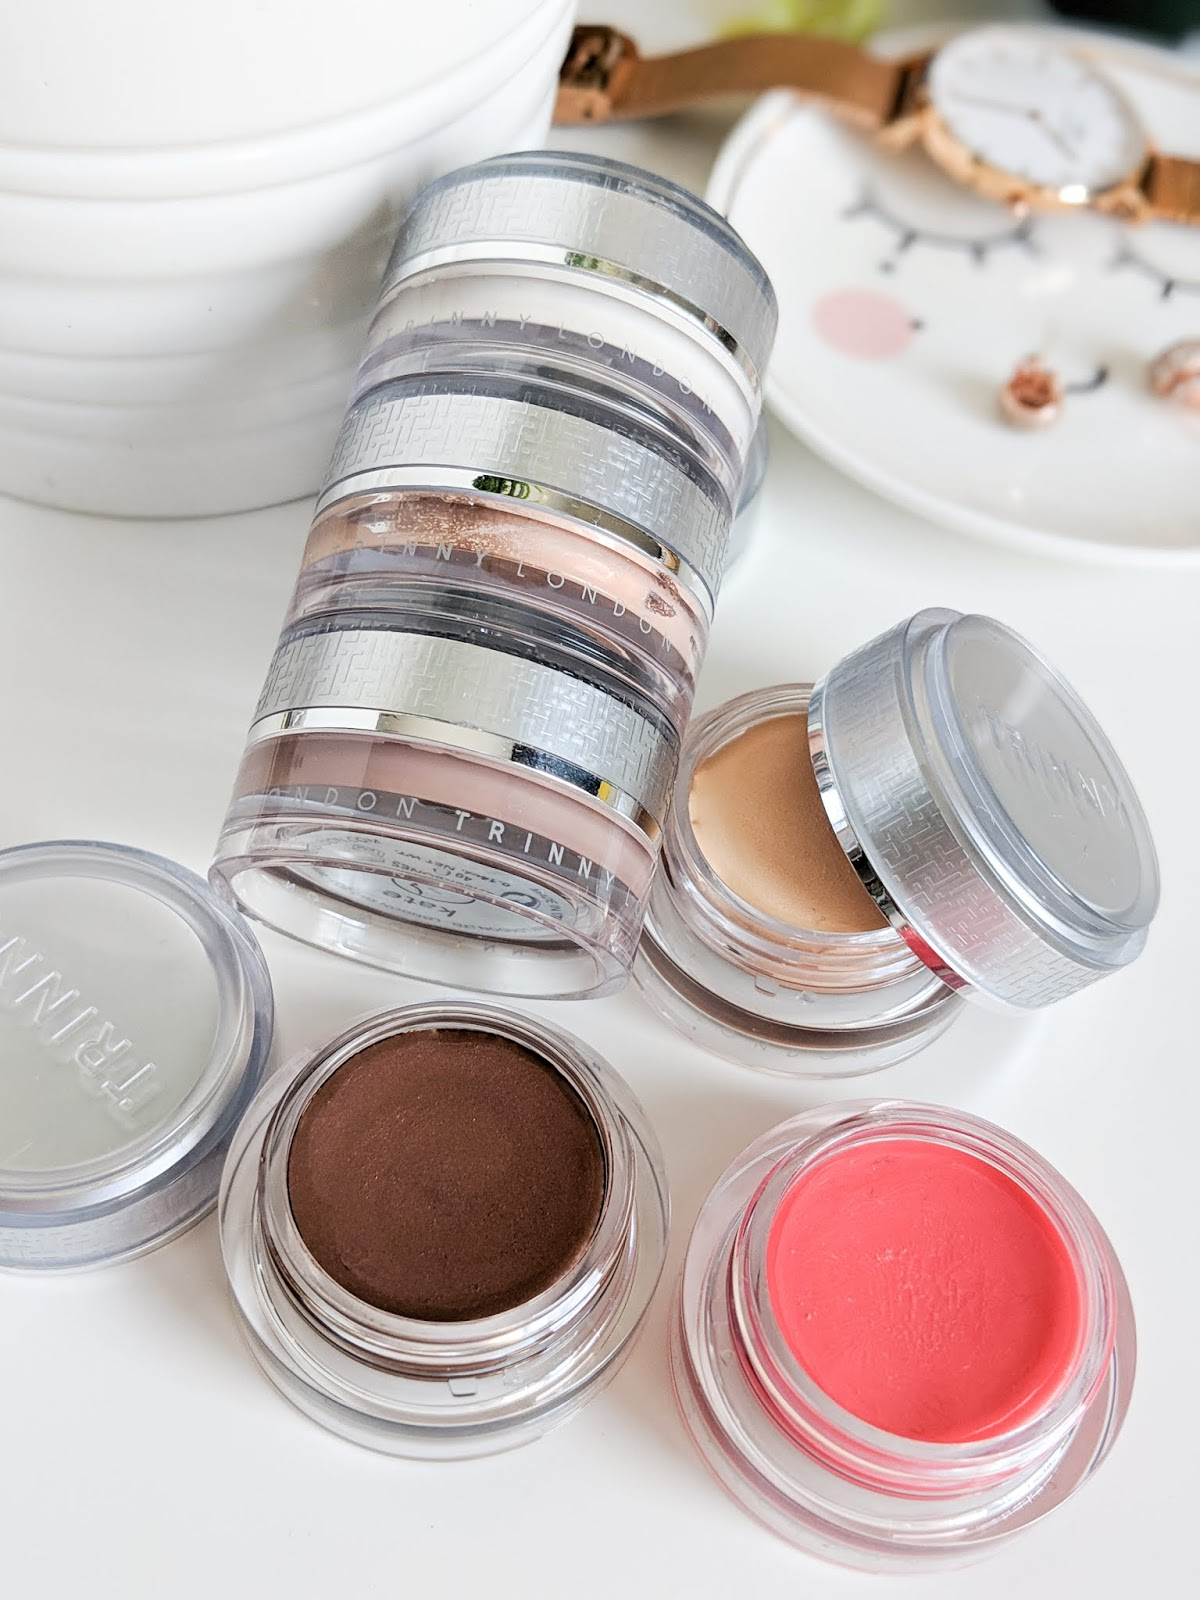 Trinny-london-stackable-makeup